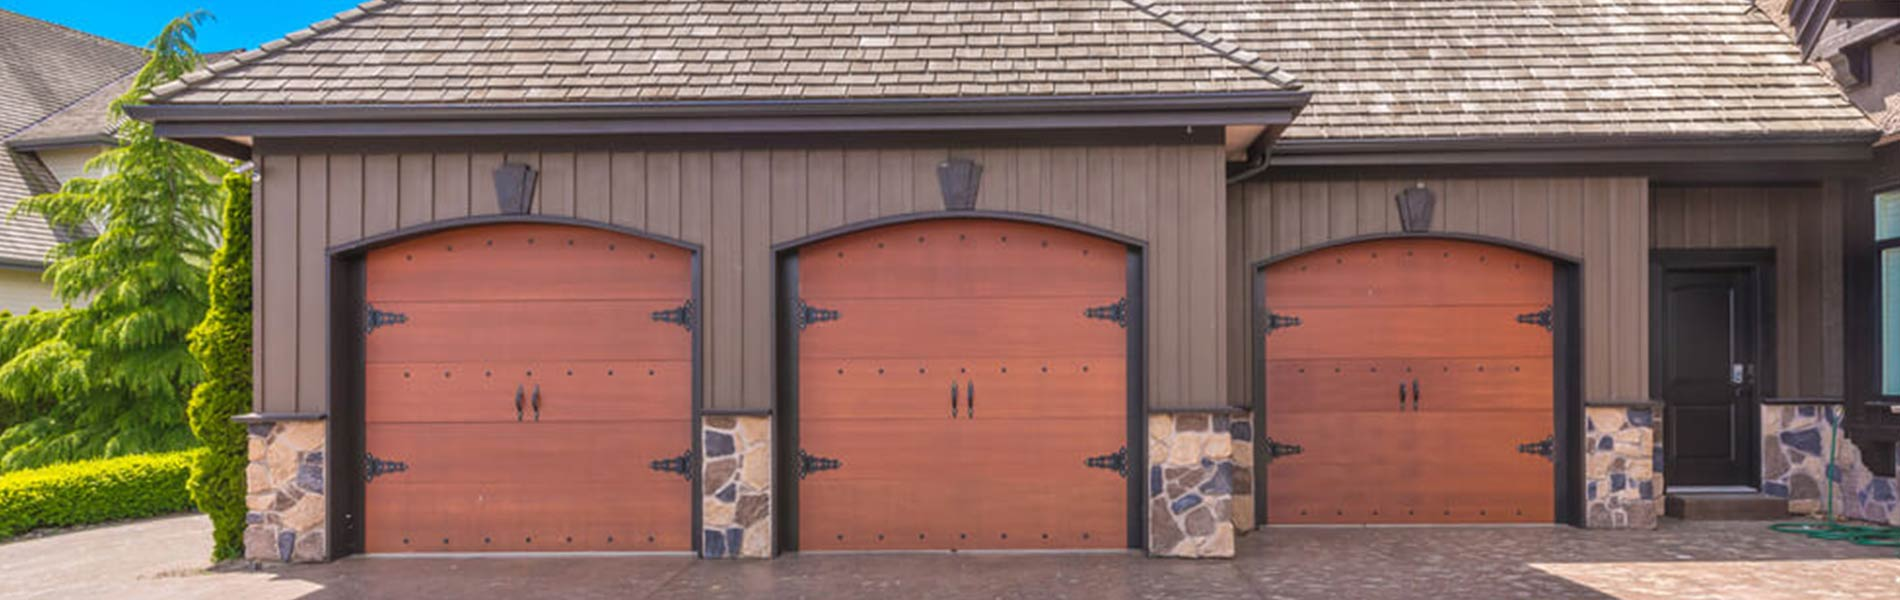 Golden Garage Door Service, Phoenix, AZ 855-215-4276